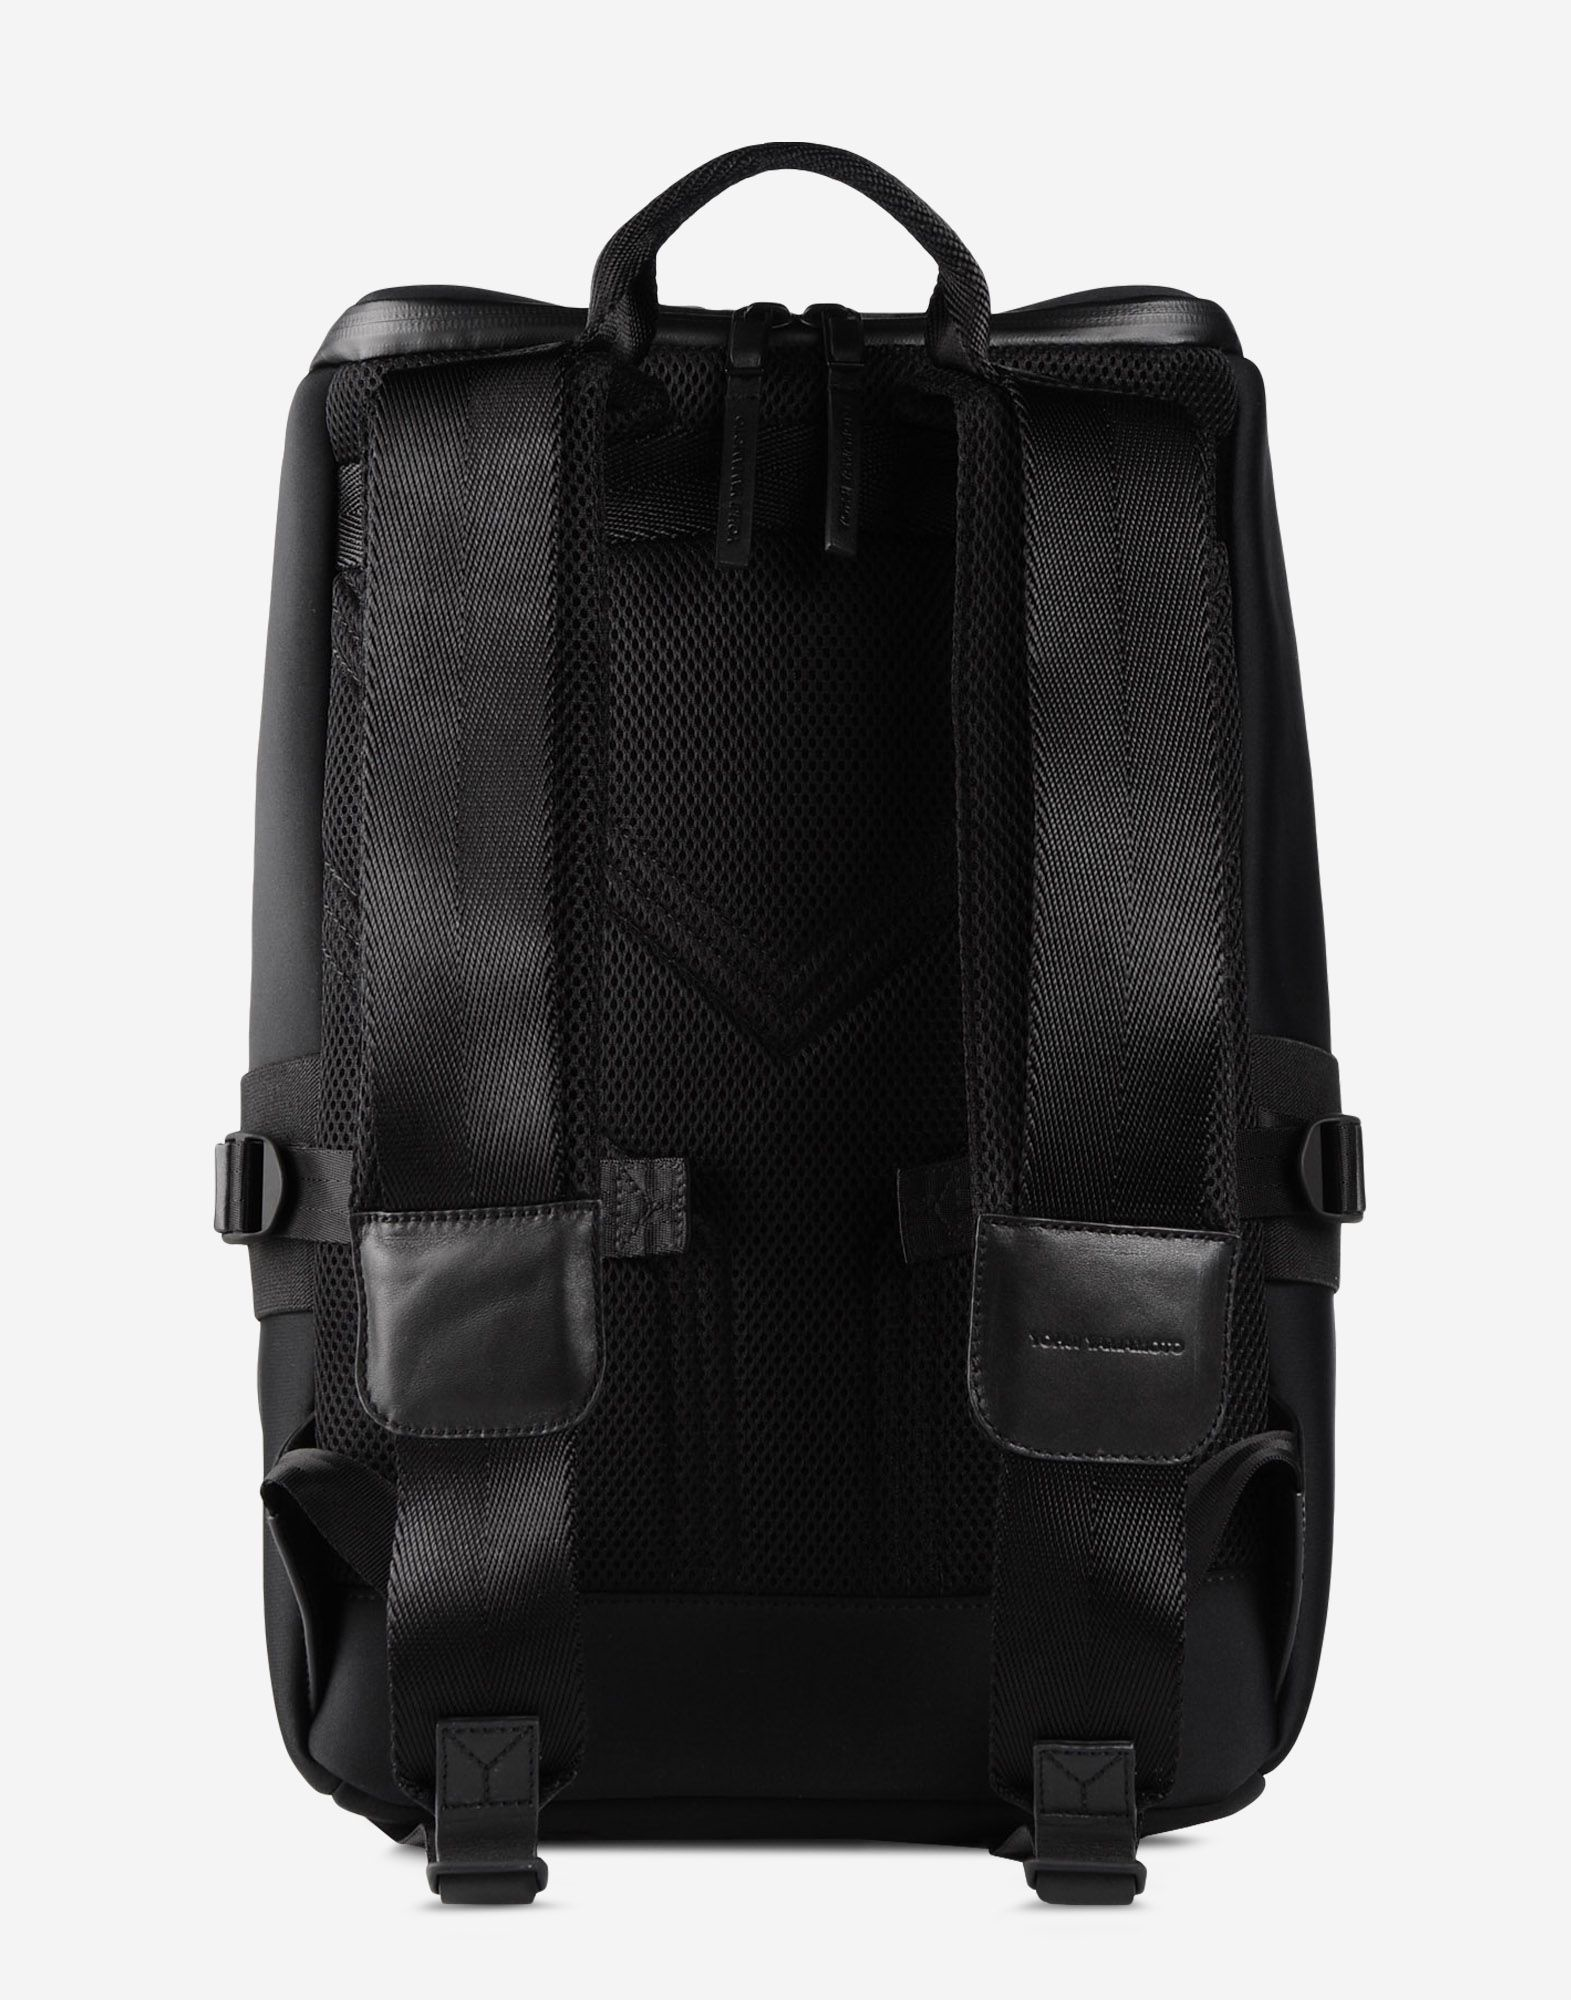 411e6c3e99 Lyst - Y-3 Day Small Backpack in Black for Men